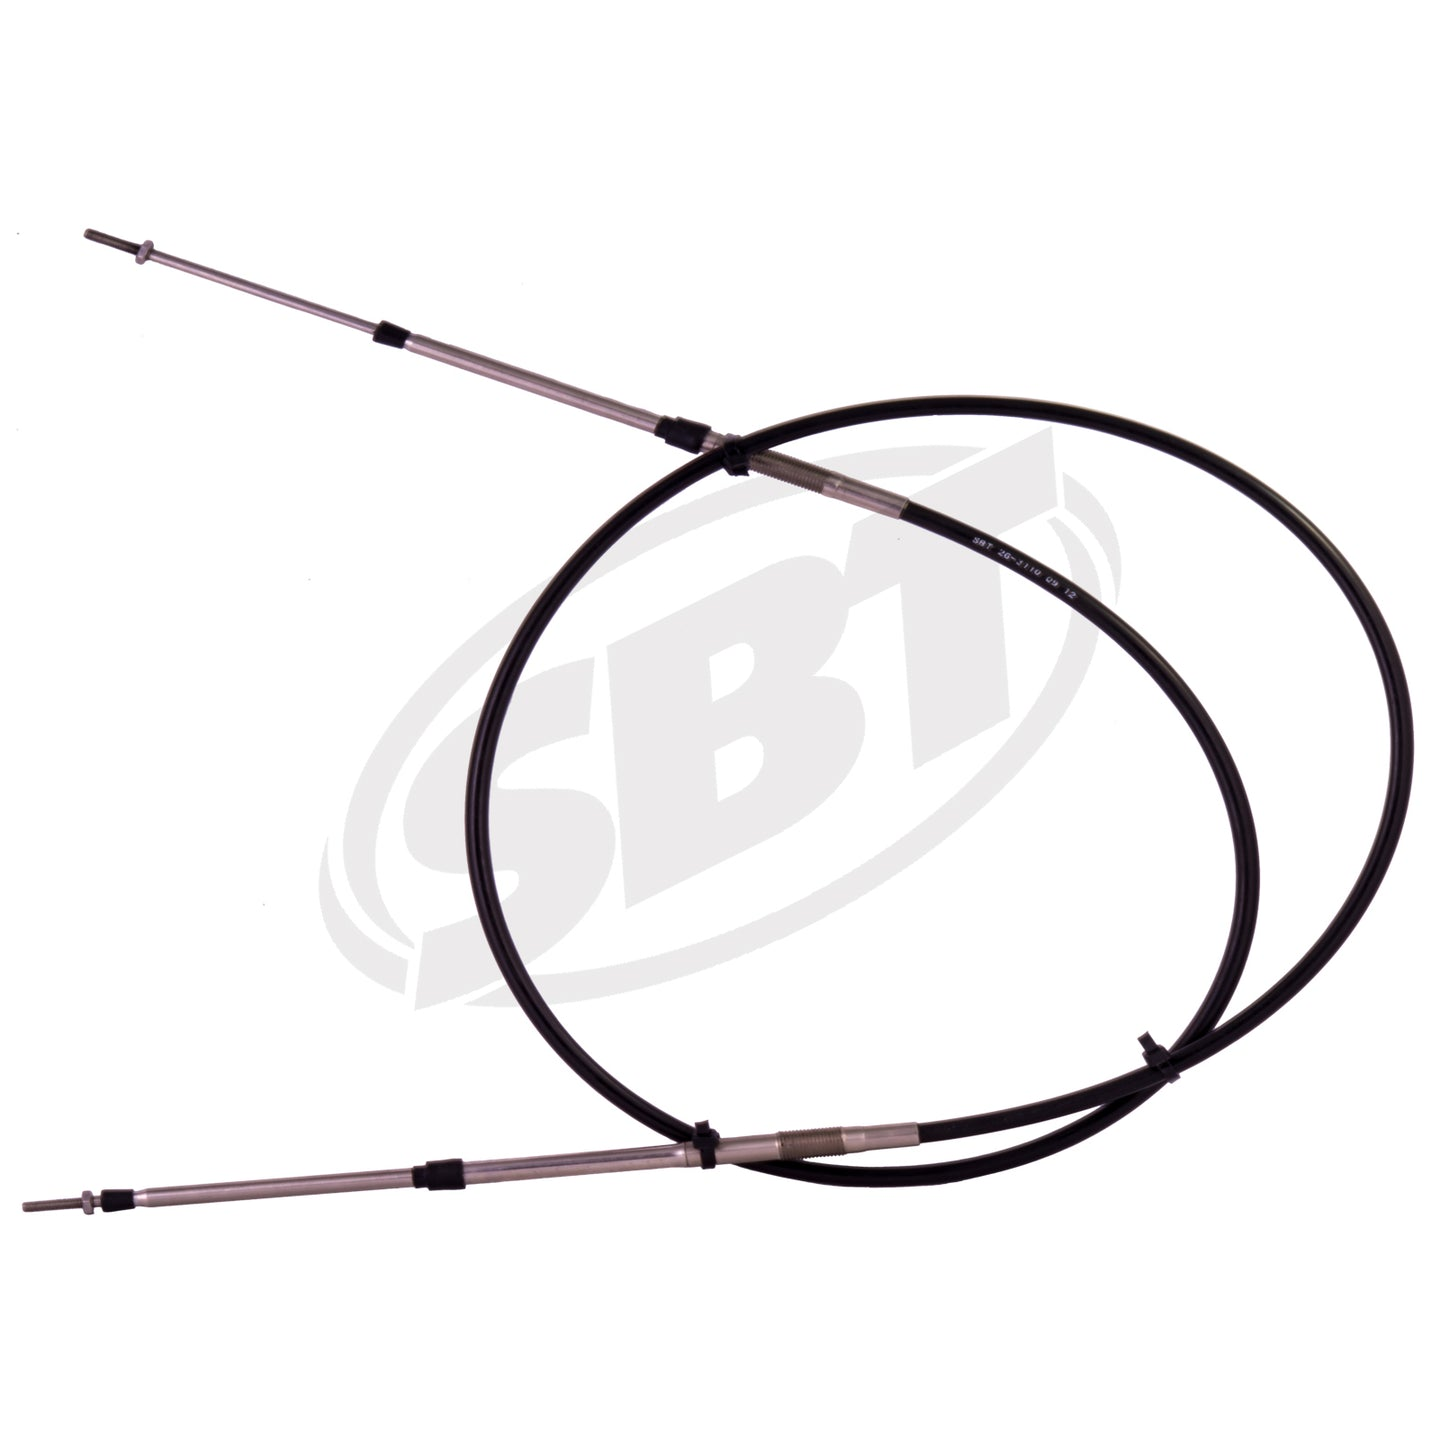 SBT Sea-Doo Steering Cable XP 277000467 1995